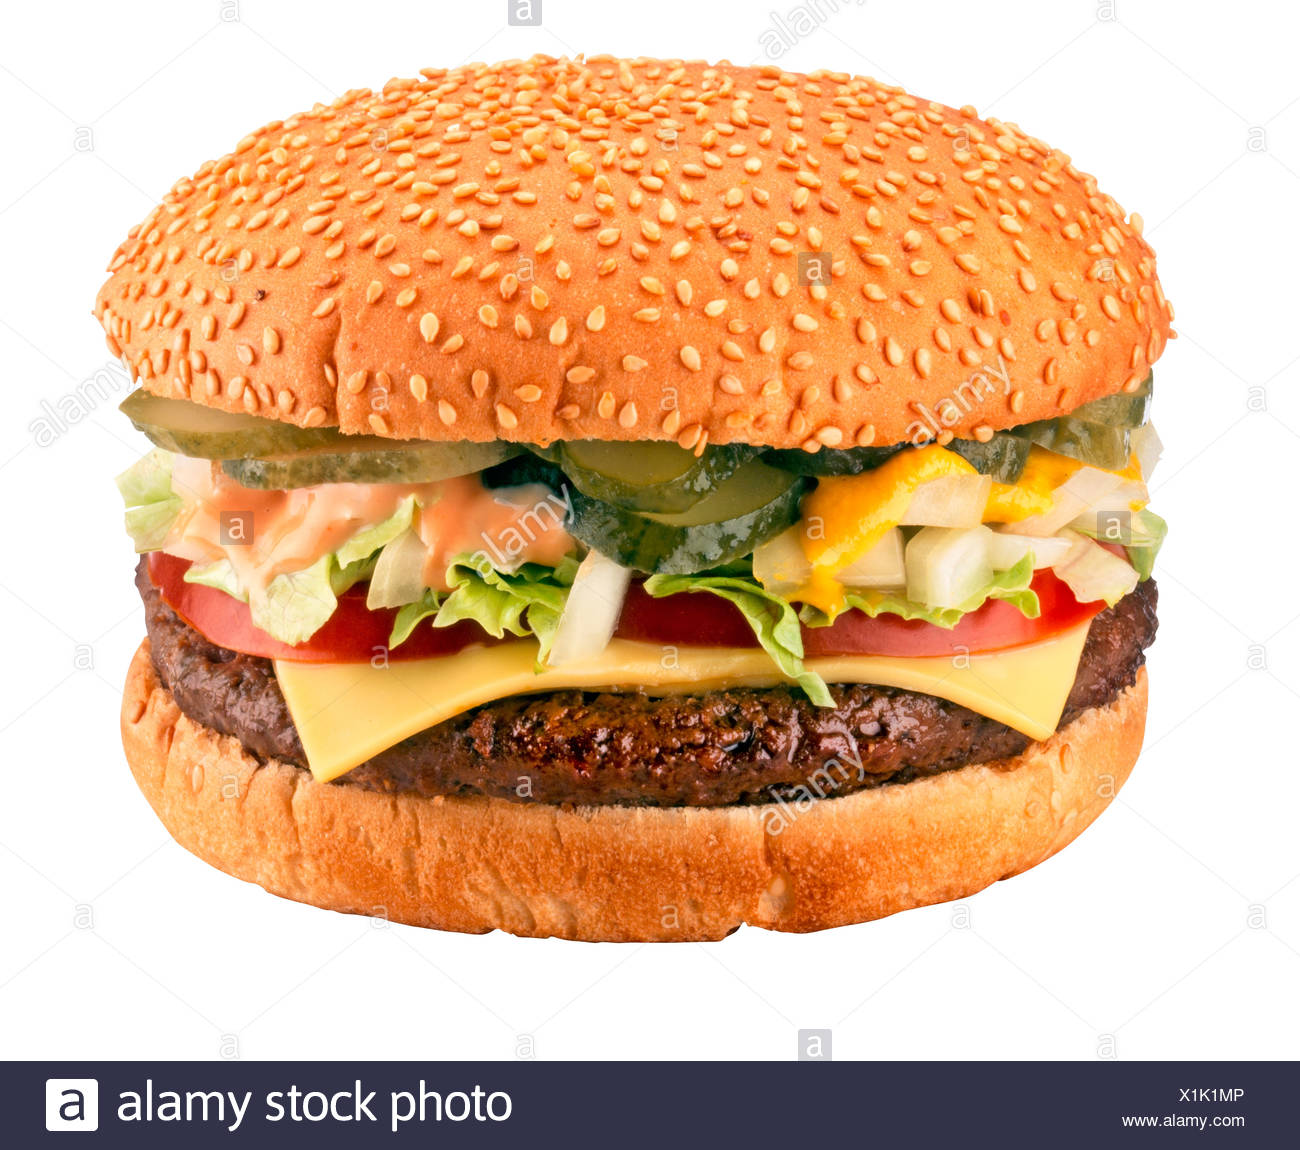 Coupé de cheeseburger Photo Stock